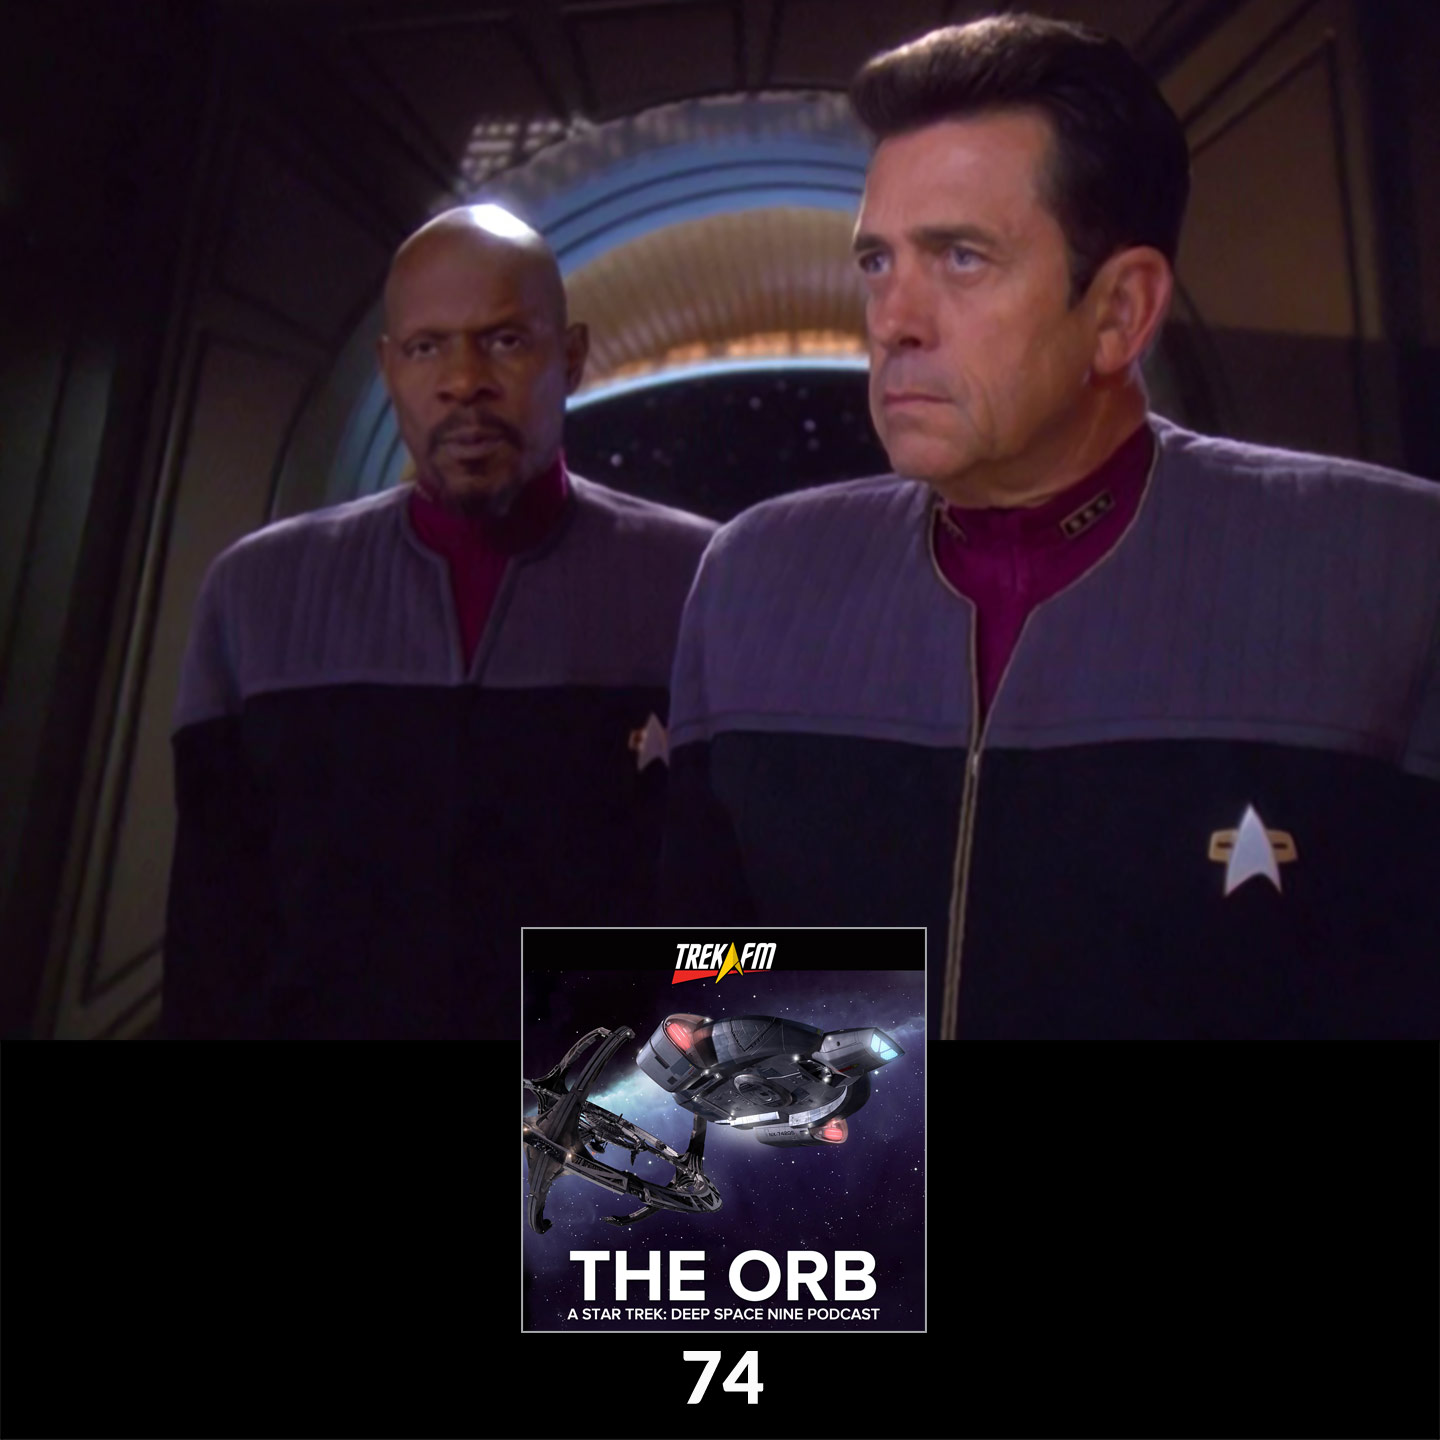 The Orb 74: Strategery